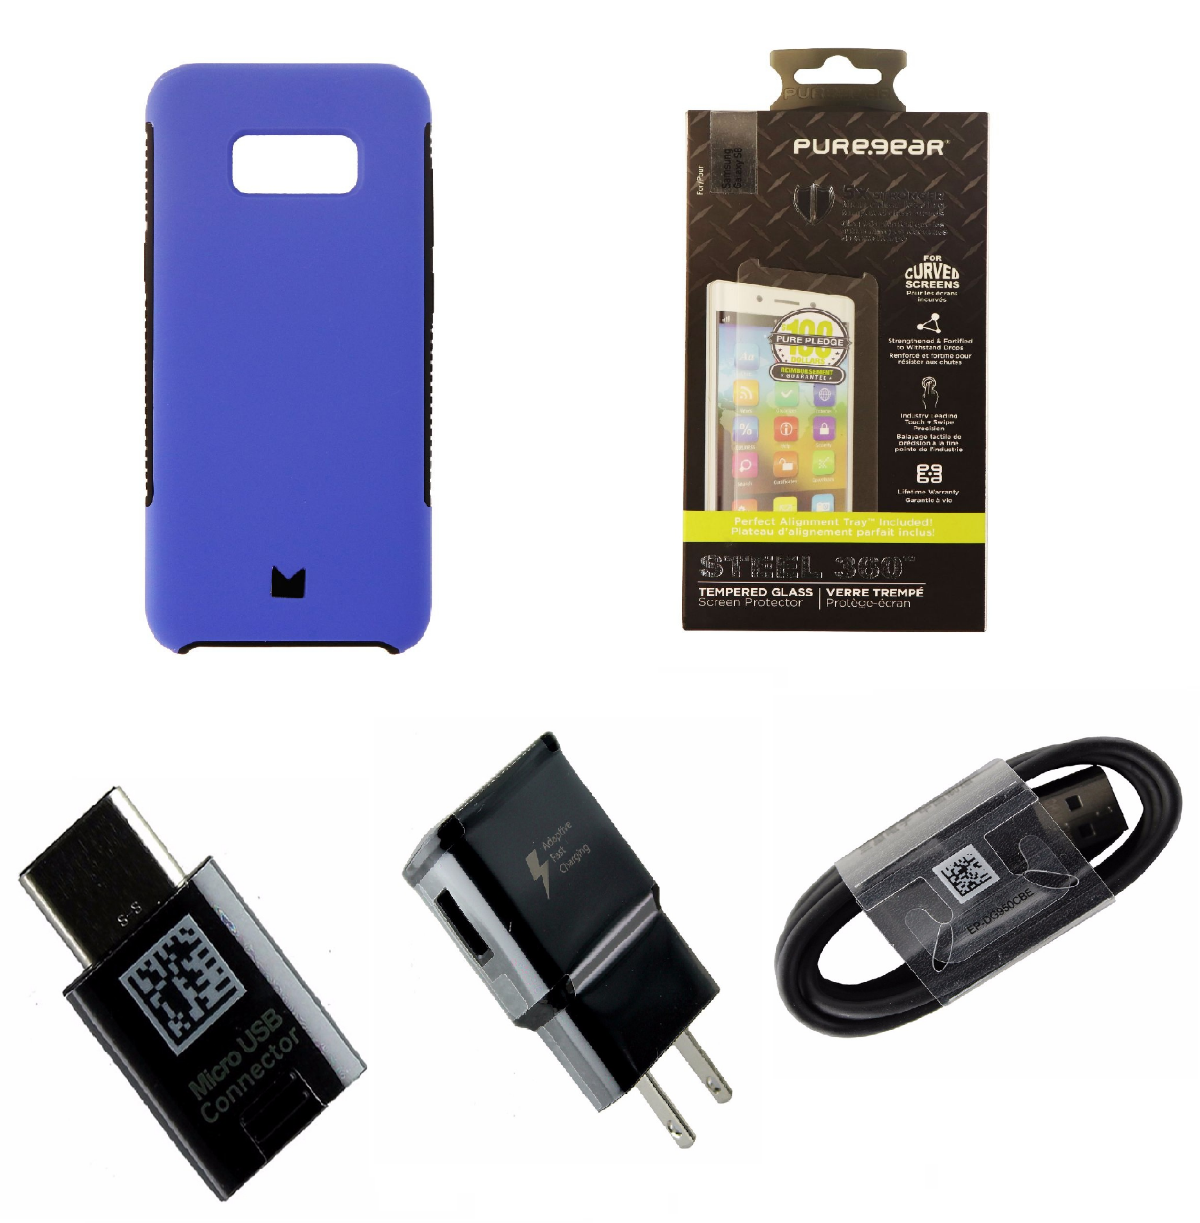 Samsung Galaxy S8 Accessory Kit with Case, Screen Protector, and Charging Kit